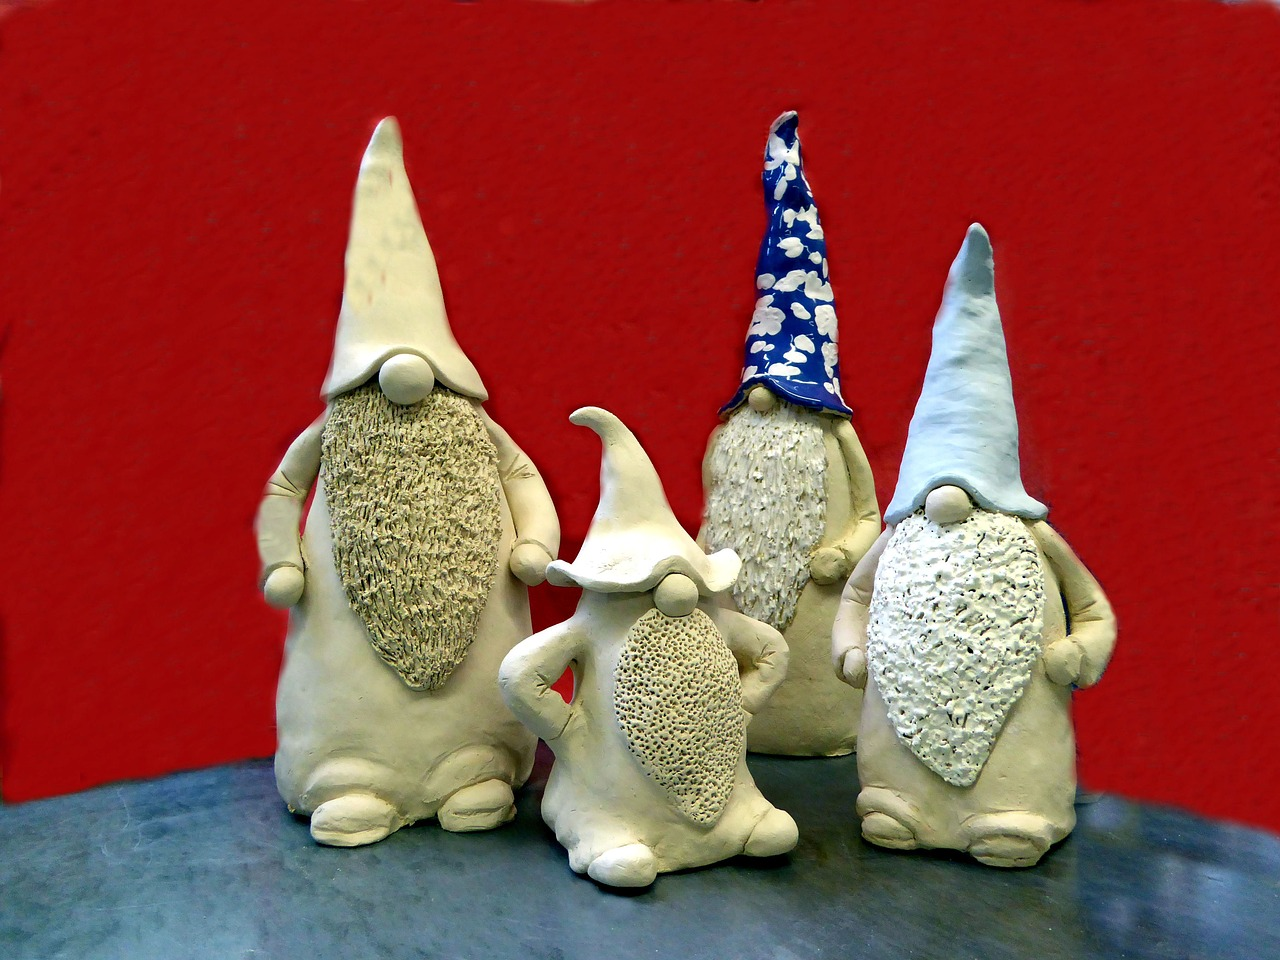 clay figures weel decoration free photo